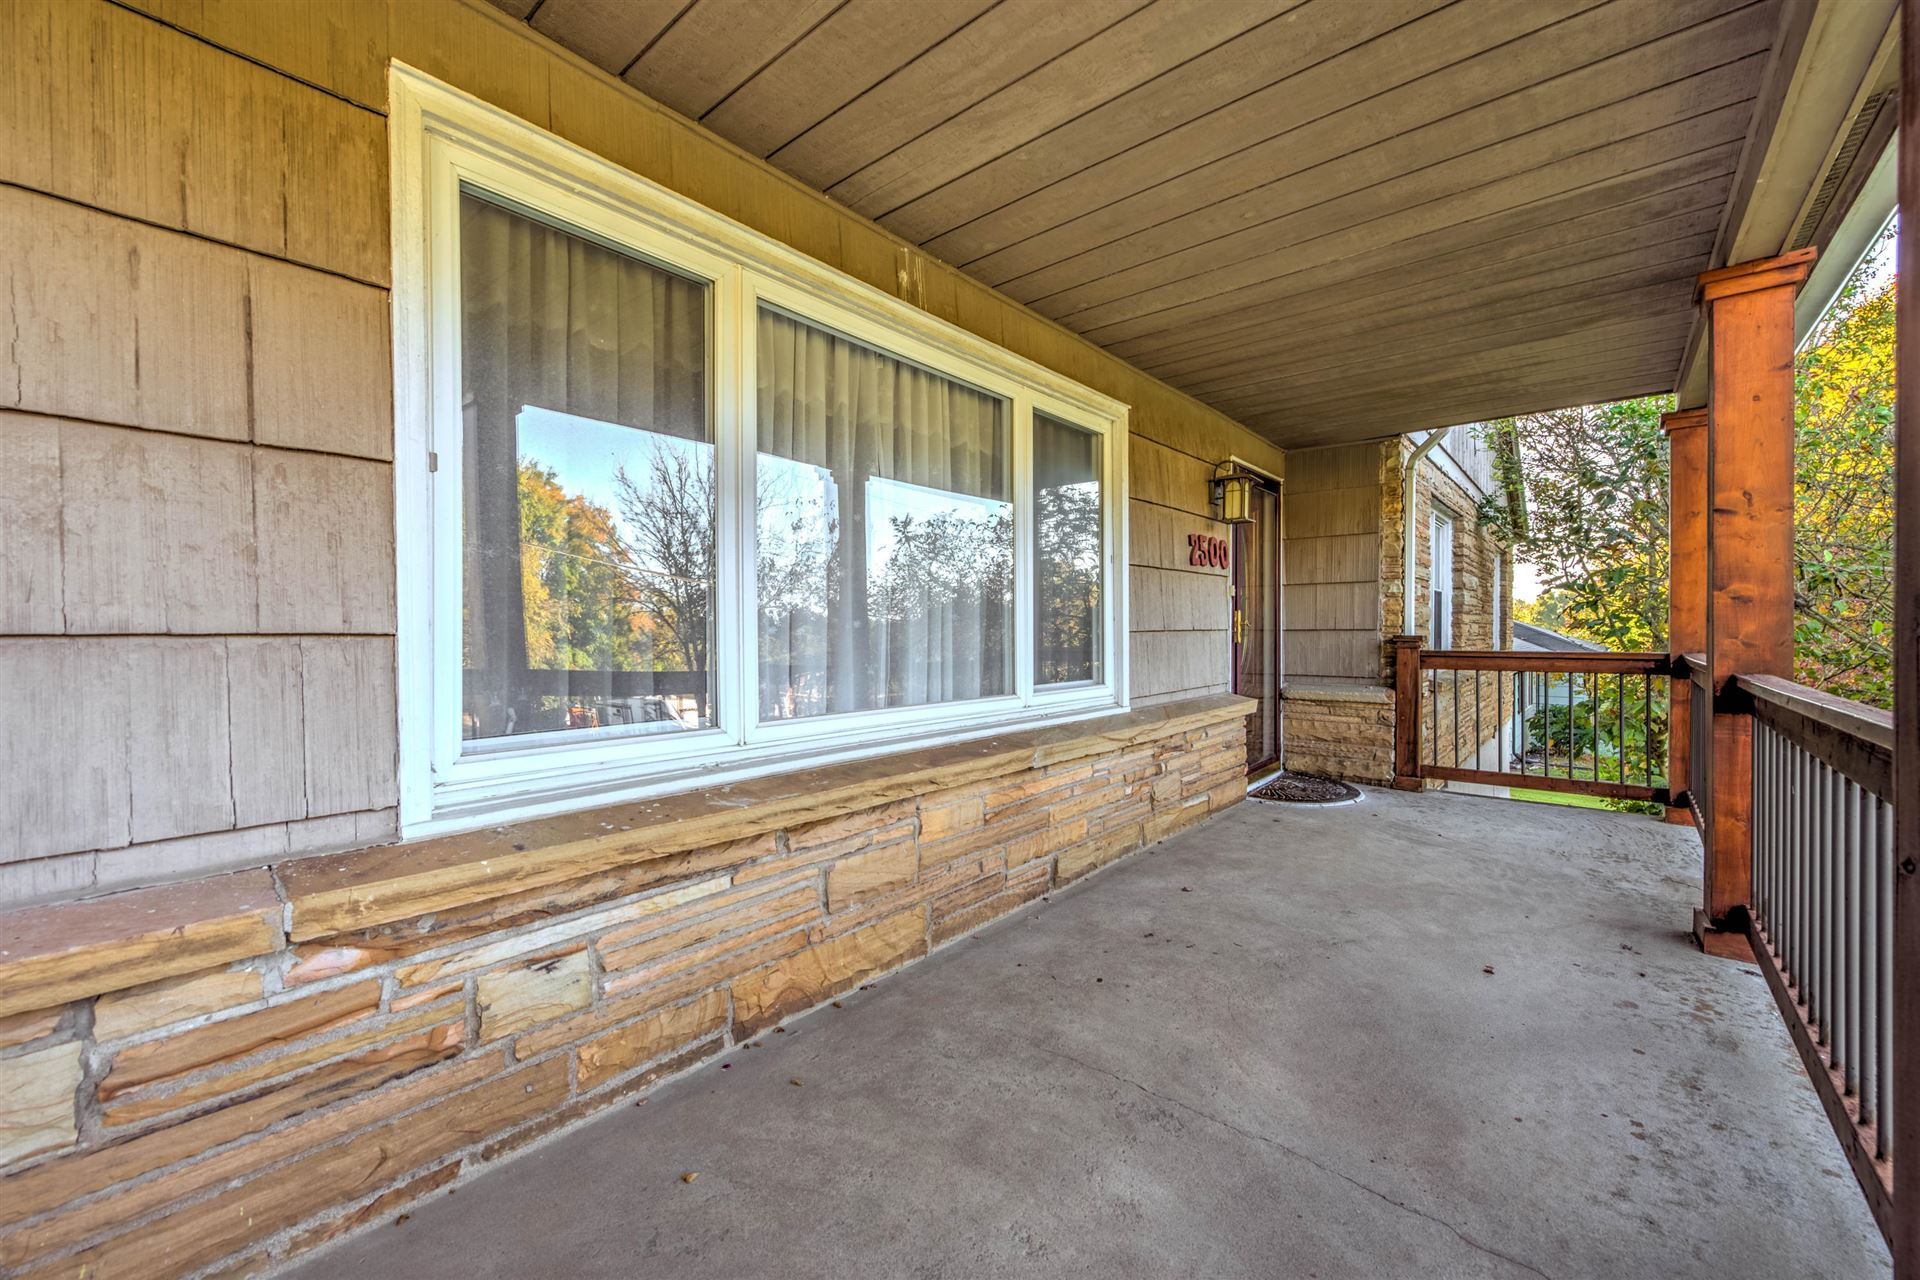 Photo of 2500 Pleasant View Lane, Knoxville, TN 37914 (MLS # 1133338)